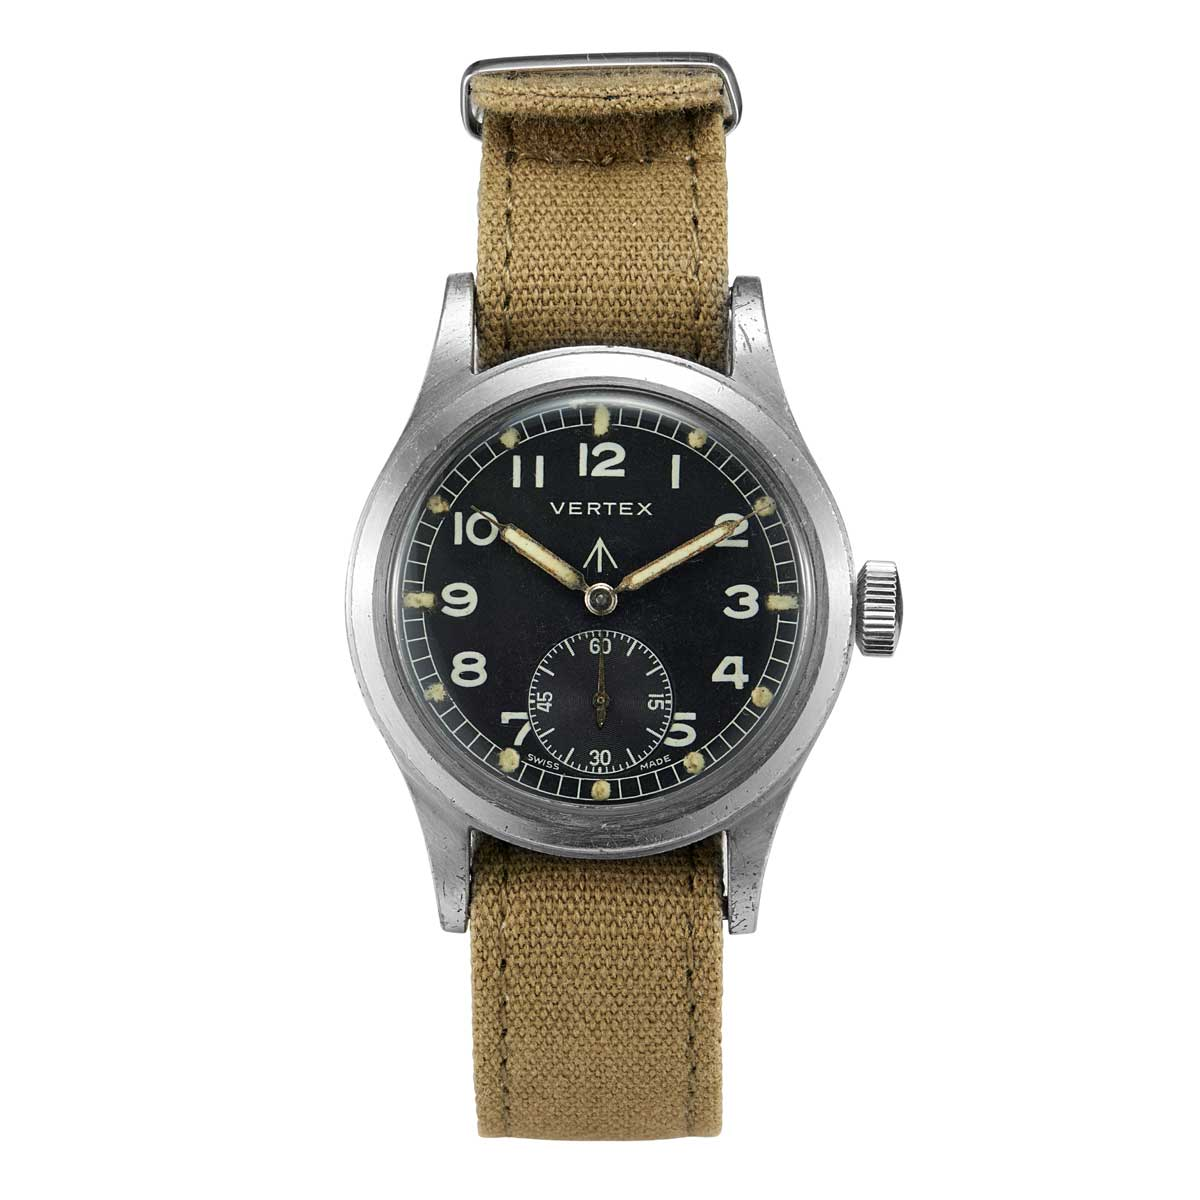 An original Vertex watch issued by the UK Ministry of Defence in the 1940s